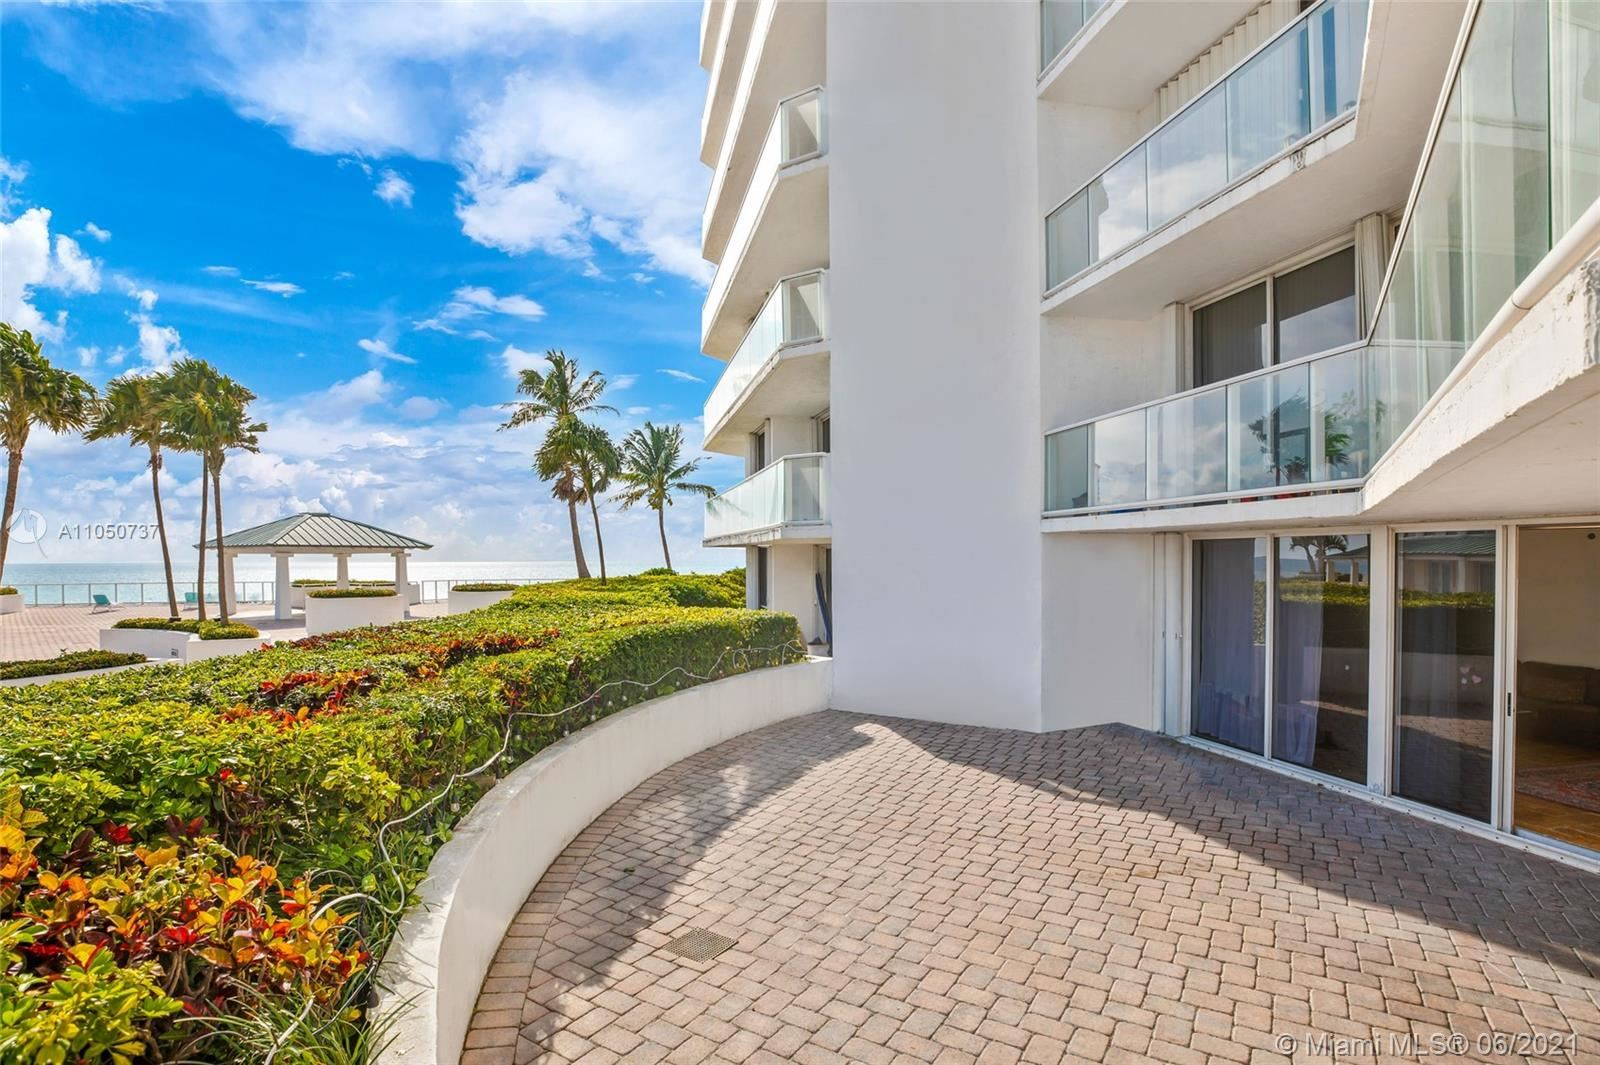 16485 Collins Ave #435, Sunny Isles, FL 33160 - #: A11050737